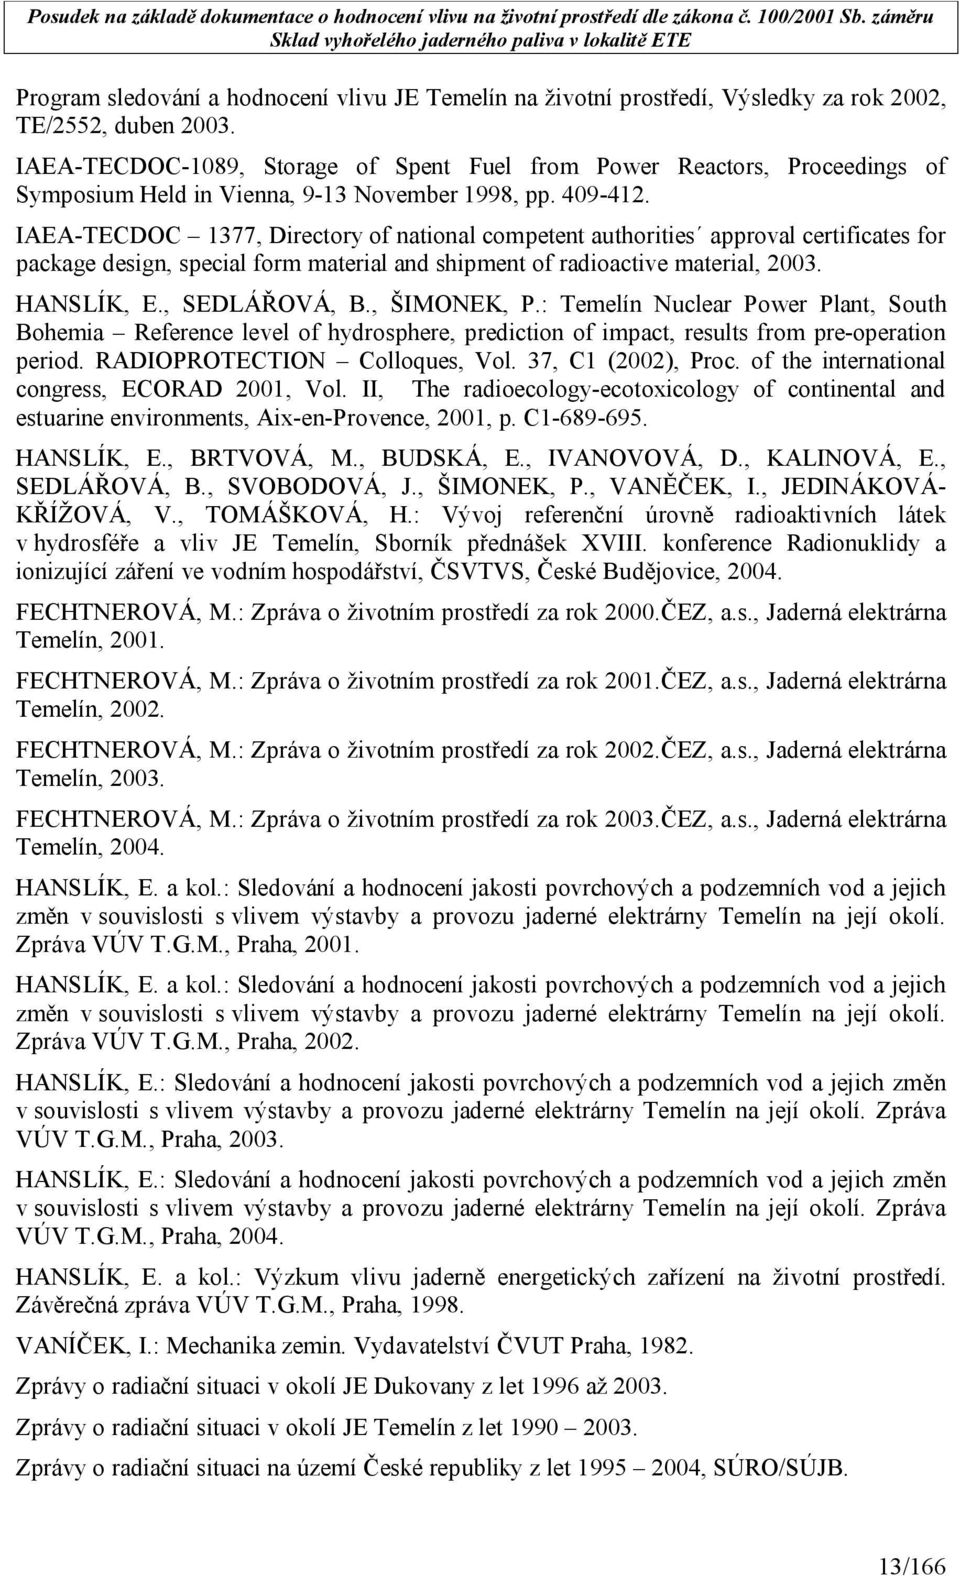 IAEA-TECDOC 1377, Directory of national competent authorities approval certificates for package design, special form material and shipment of radioactive material, 2003. HANSLÍK, E., SEDLÁŘOVÁ, B.